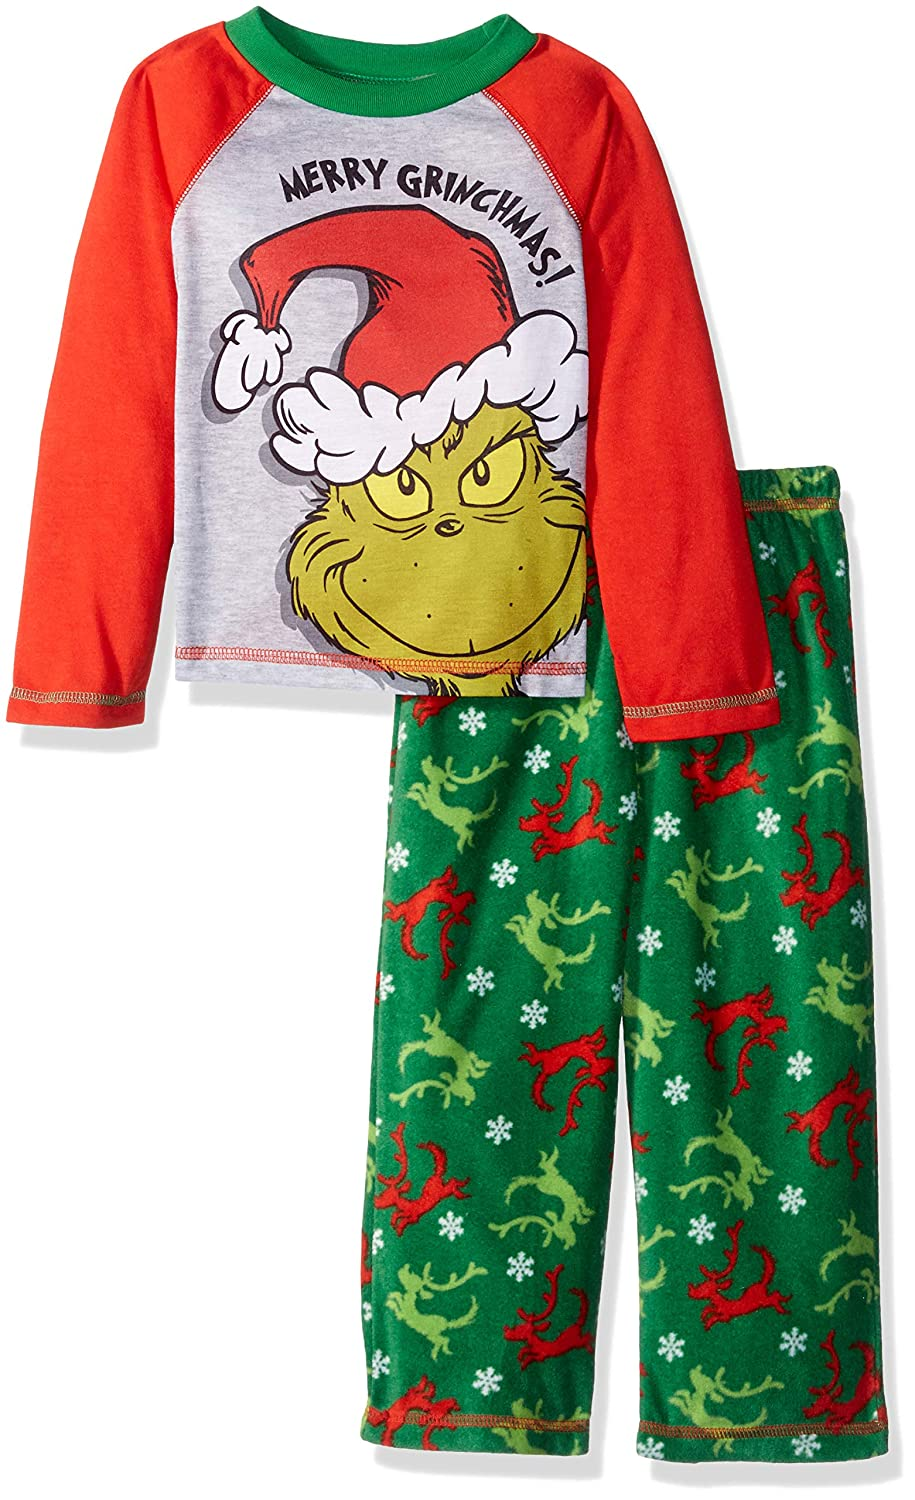 The Grinch Boys Toddler Boys Grinch Sleep Set K183715SE